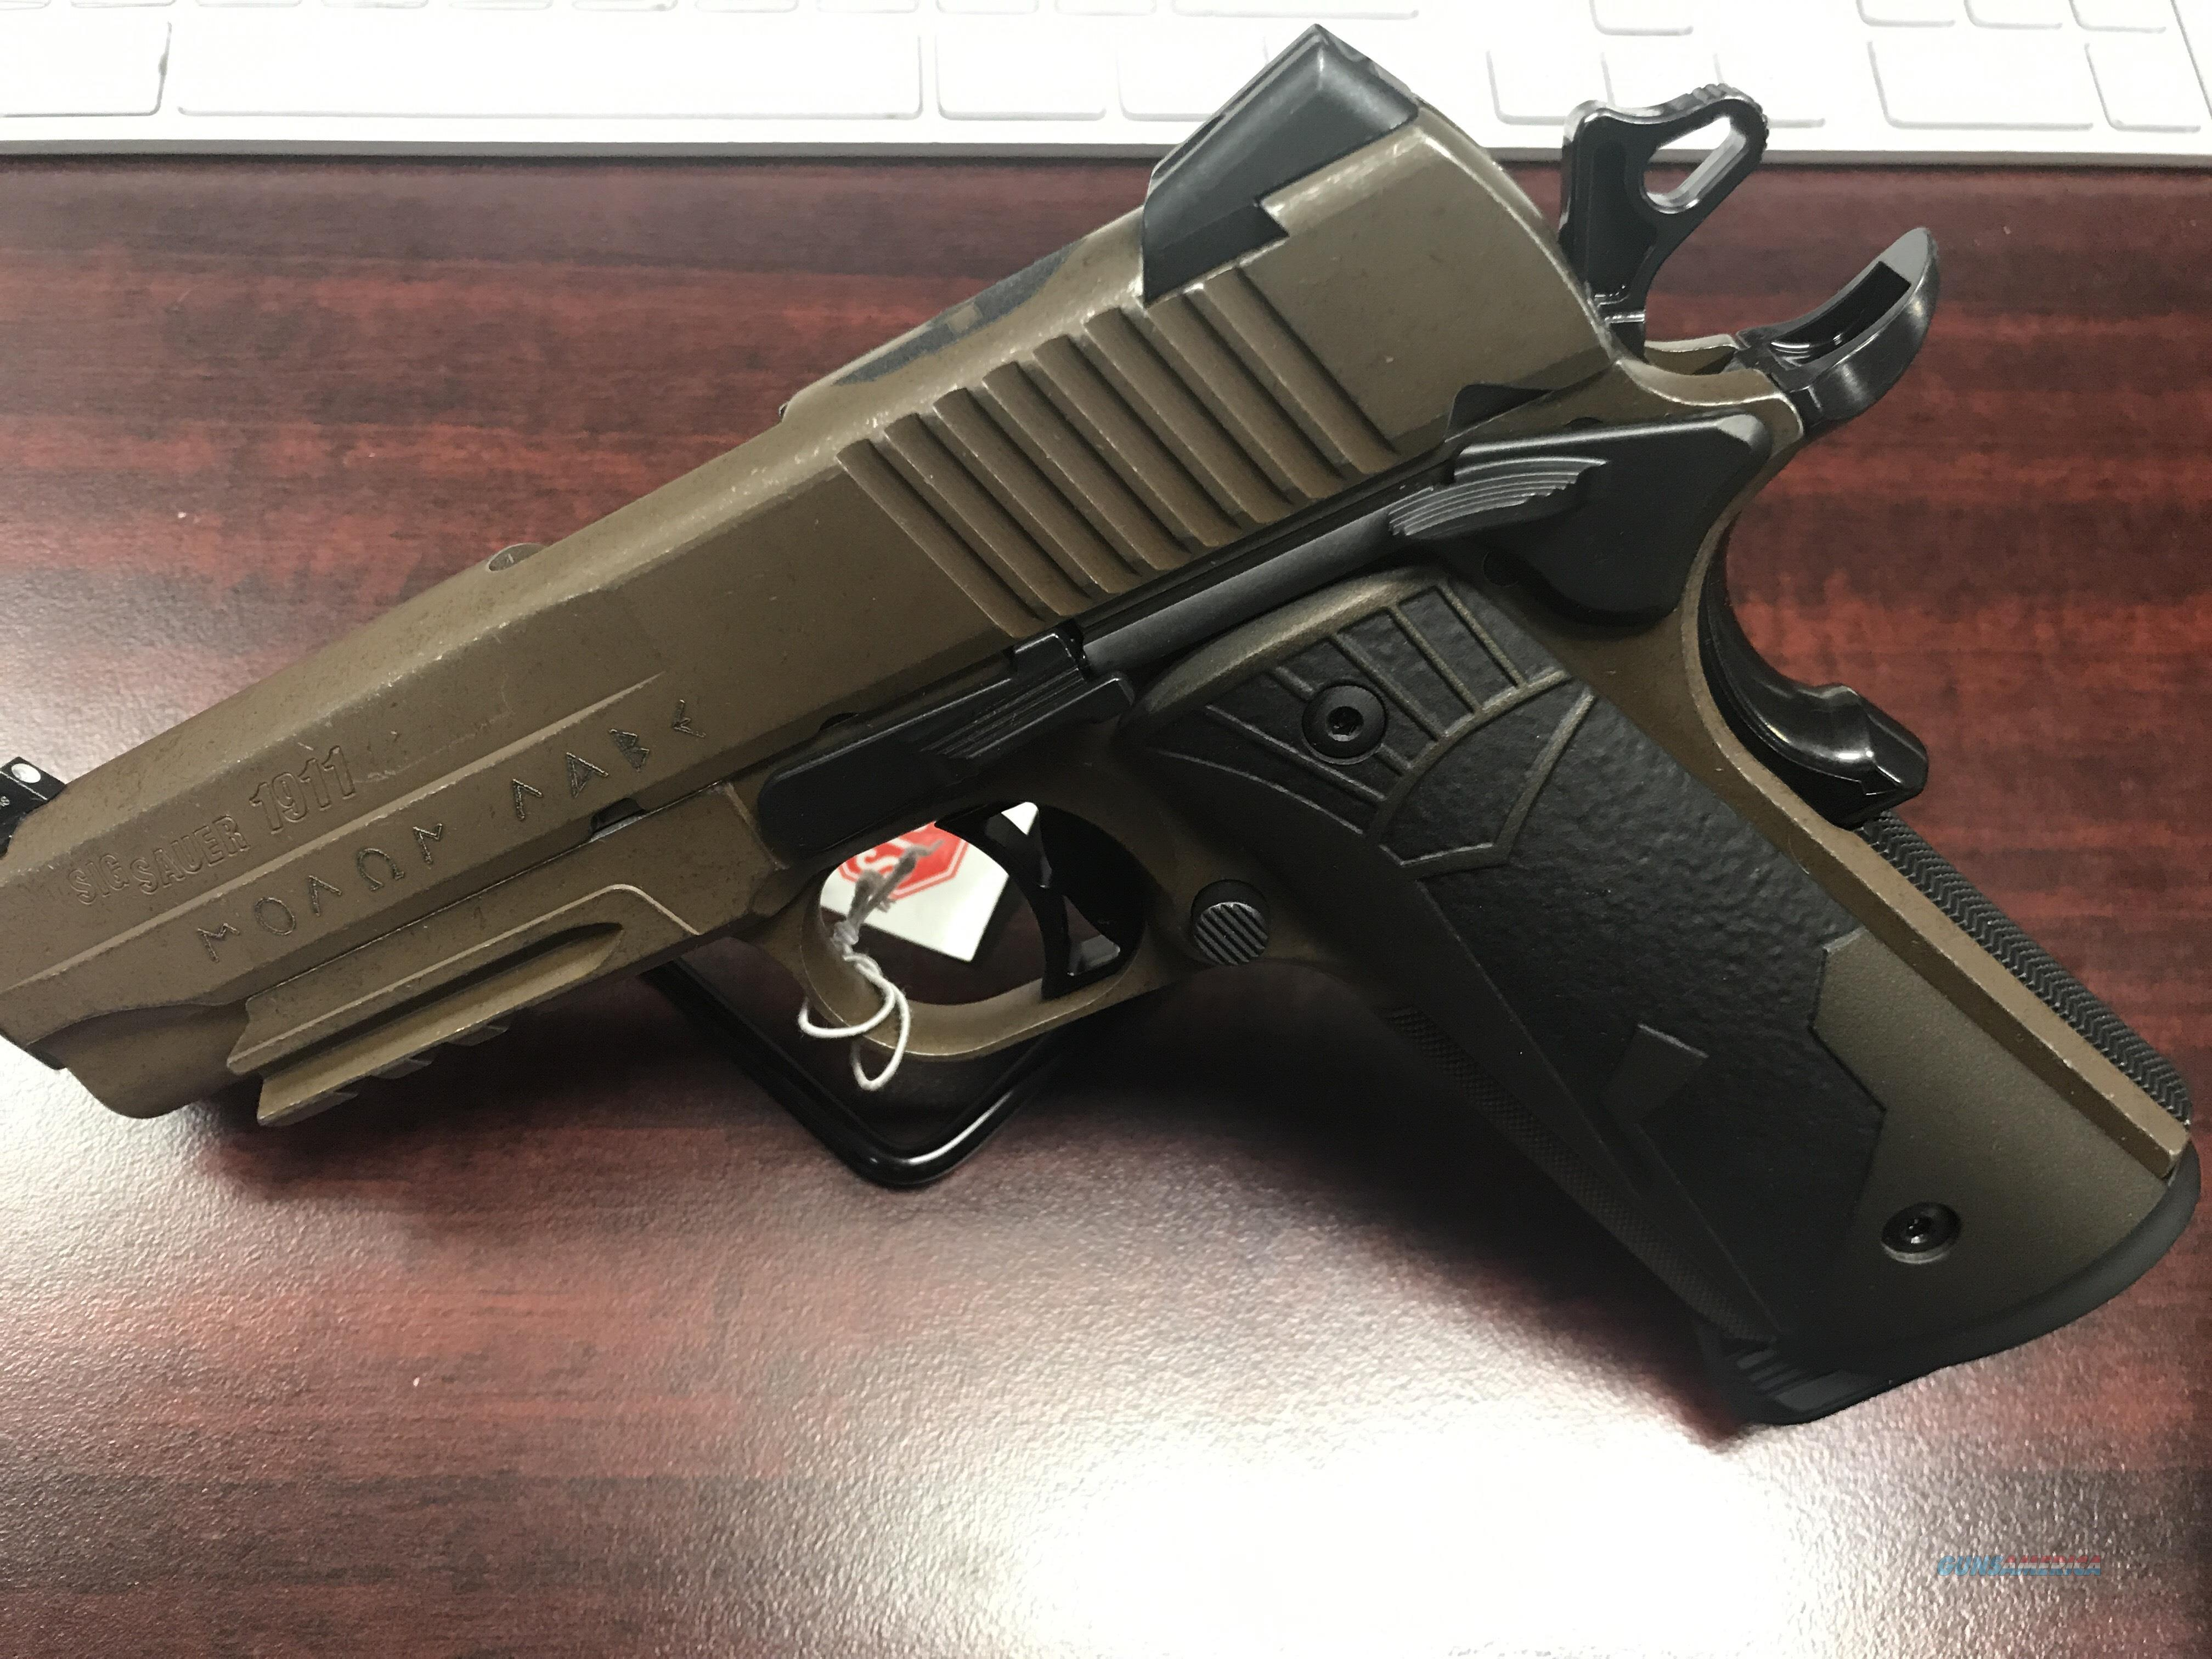 SIG SPARTAN CARRY II 45 ACP-FREE AMMO-FREE SHIPPING  Guns > Pistols > Sig - Sauer/Sigarms Pistols > 1911